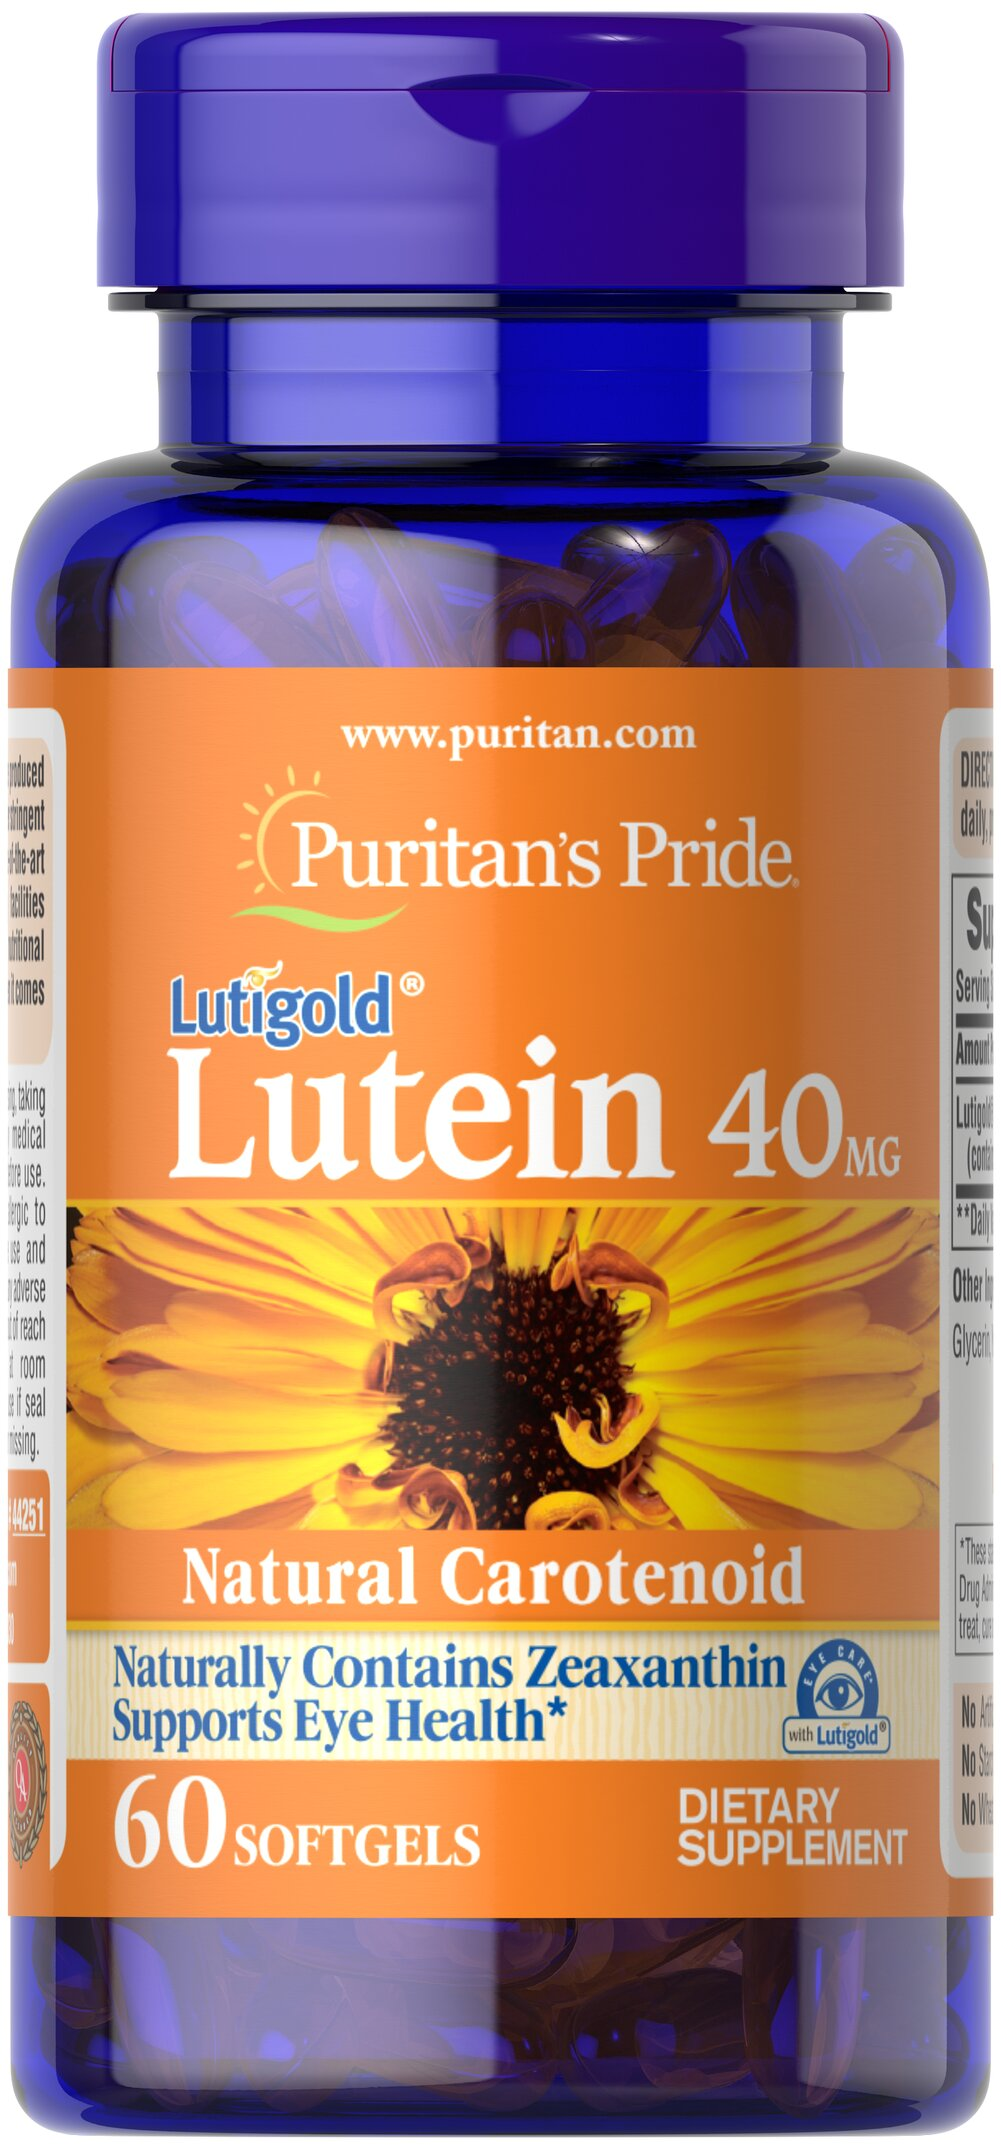 Lutein 40 mg with Zeaxanthin <p>Like other parts of the body, the eyes can be affected by the stresses of time.  Lutein helps to improve vision in low contrast situations, which is essential for night driving.**  Lutein plays a role in the maintenance of eye health and is the principle Carotenoid found in the central area of the retina called the macula.** Carotenoids are fat-soluble antioxidants found in fruits, vegetables, marigolds and other plants.** Adults can take o